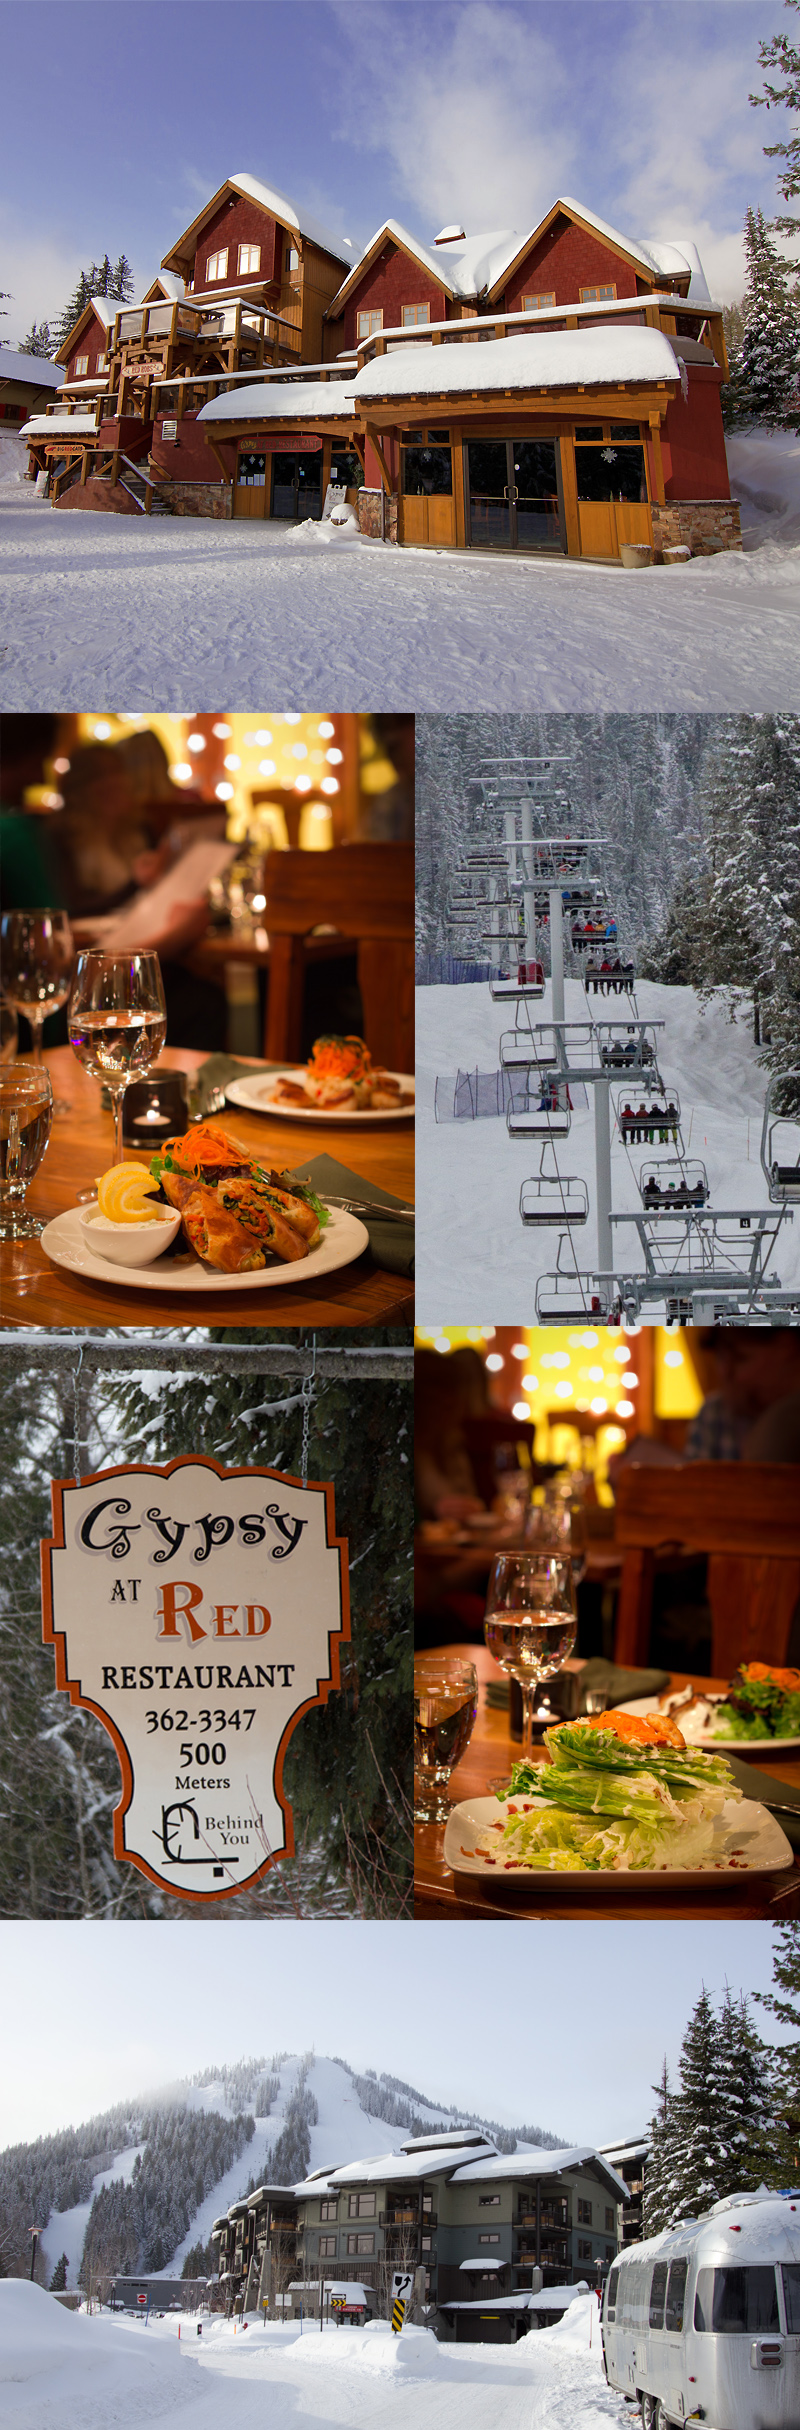 Gypsy at Red - Restaurant, Rossland BC